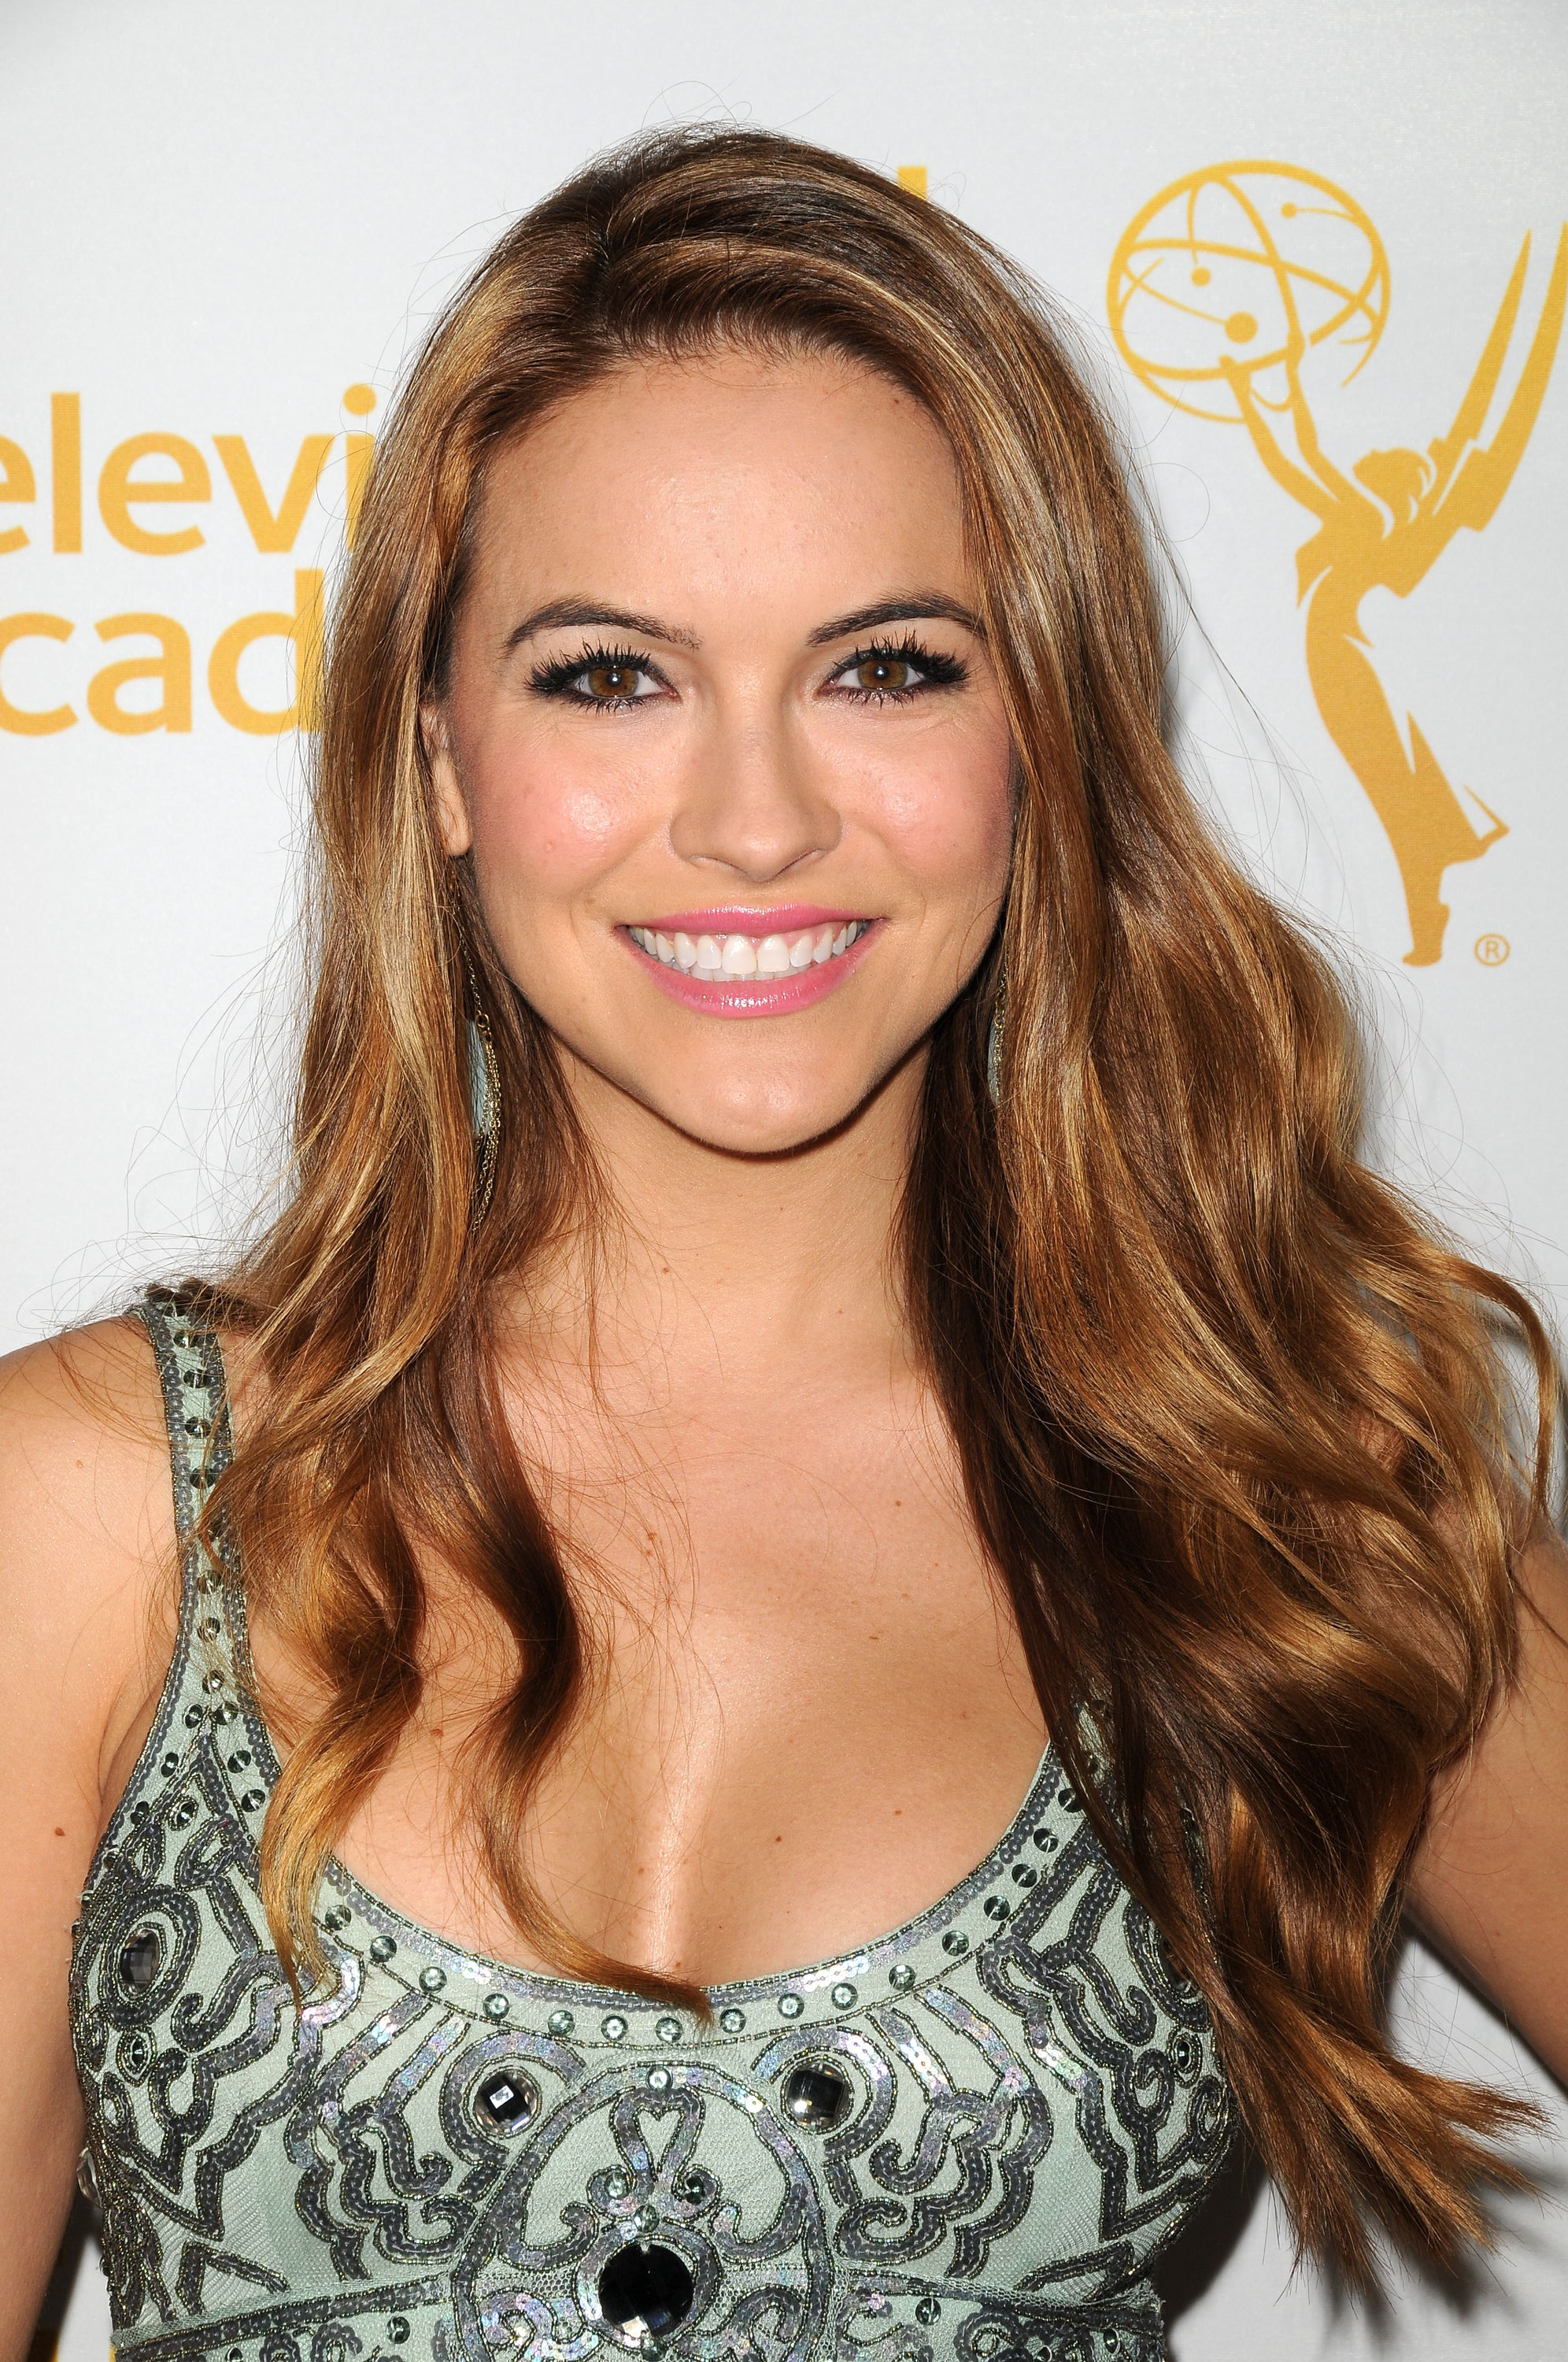 Celebrity Amanda Chrishell